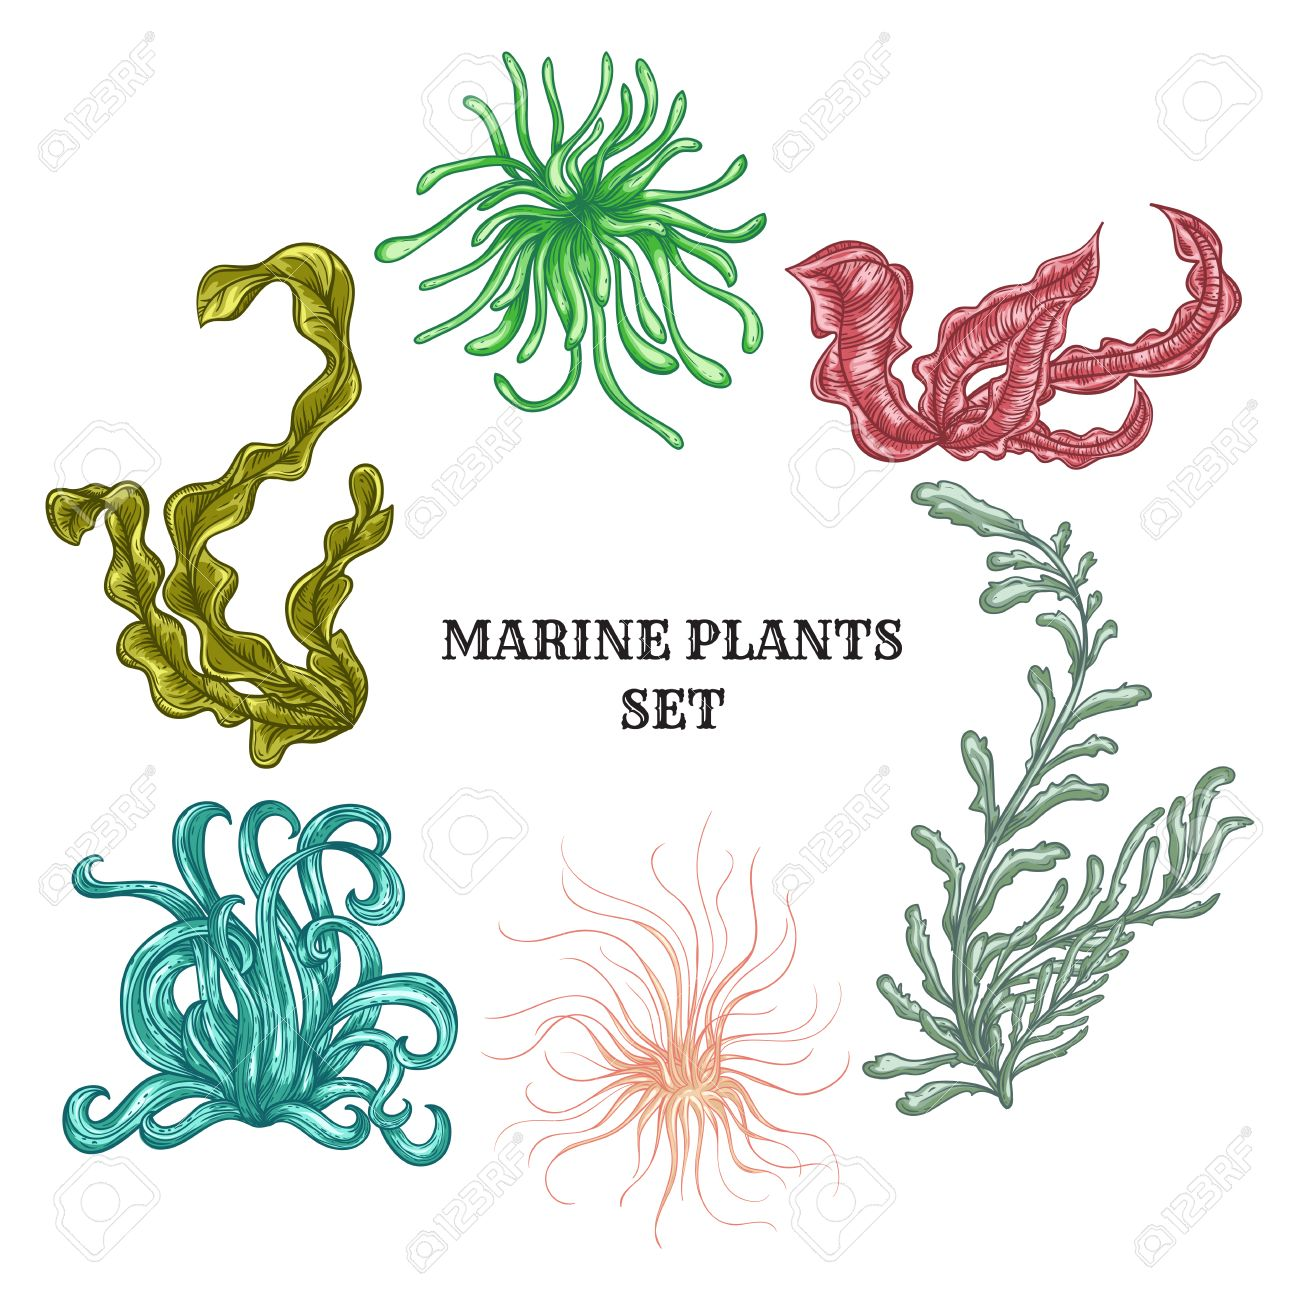 Collection of marine plants, leaves and seaweed. Vintage set of colorful hand drawn marine flora. - 45883231